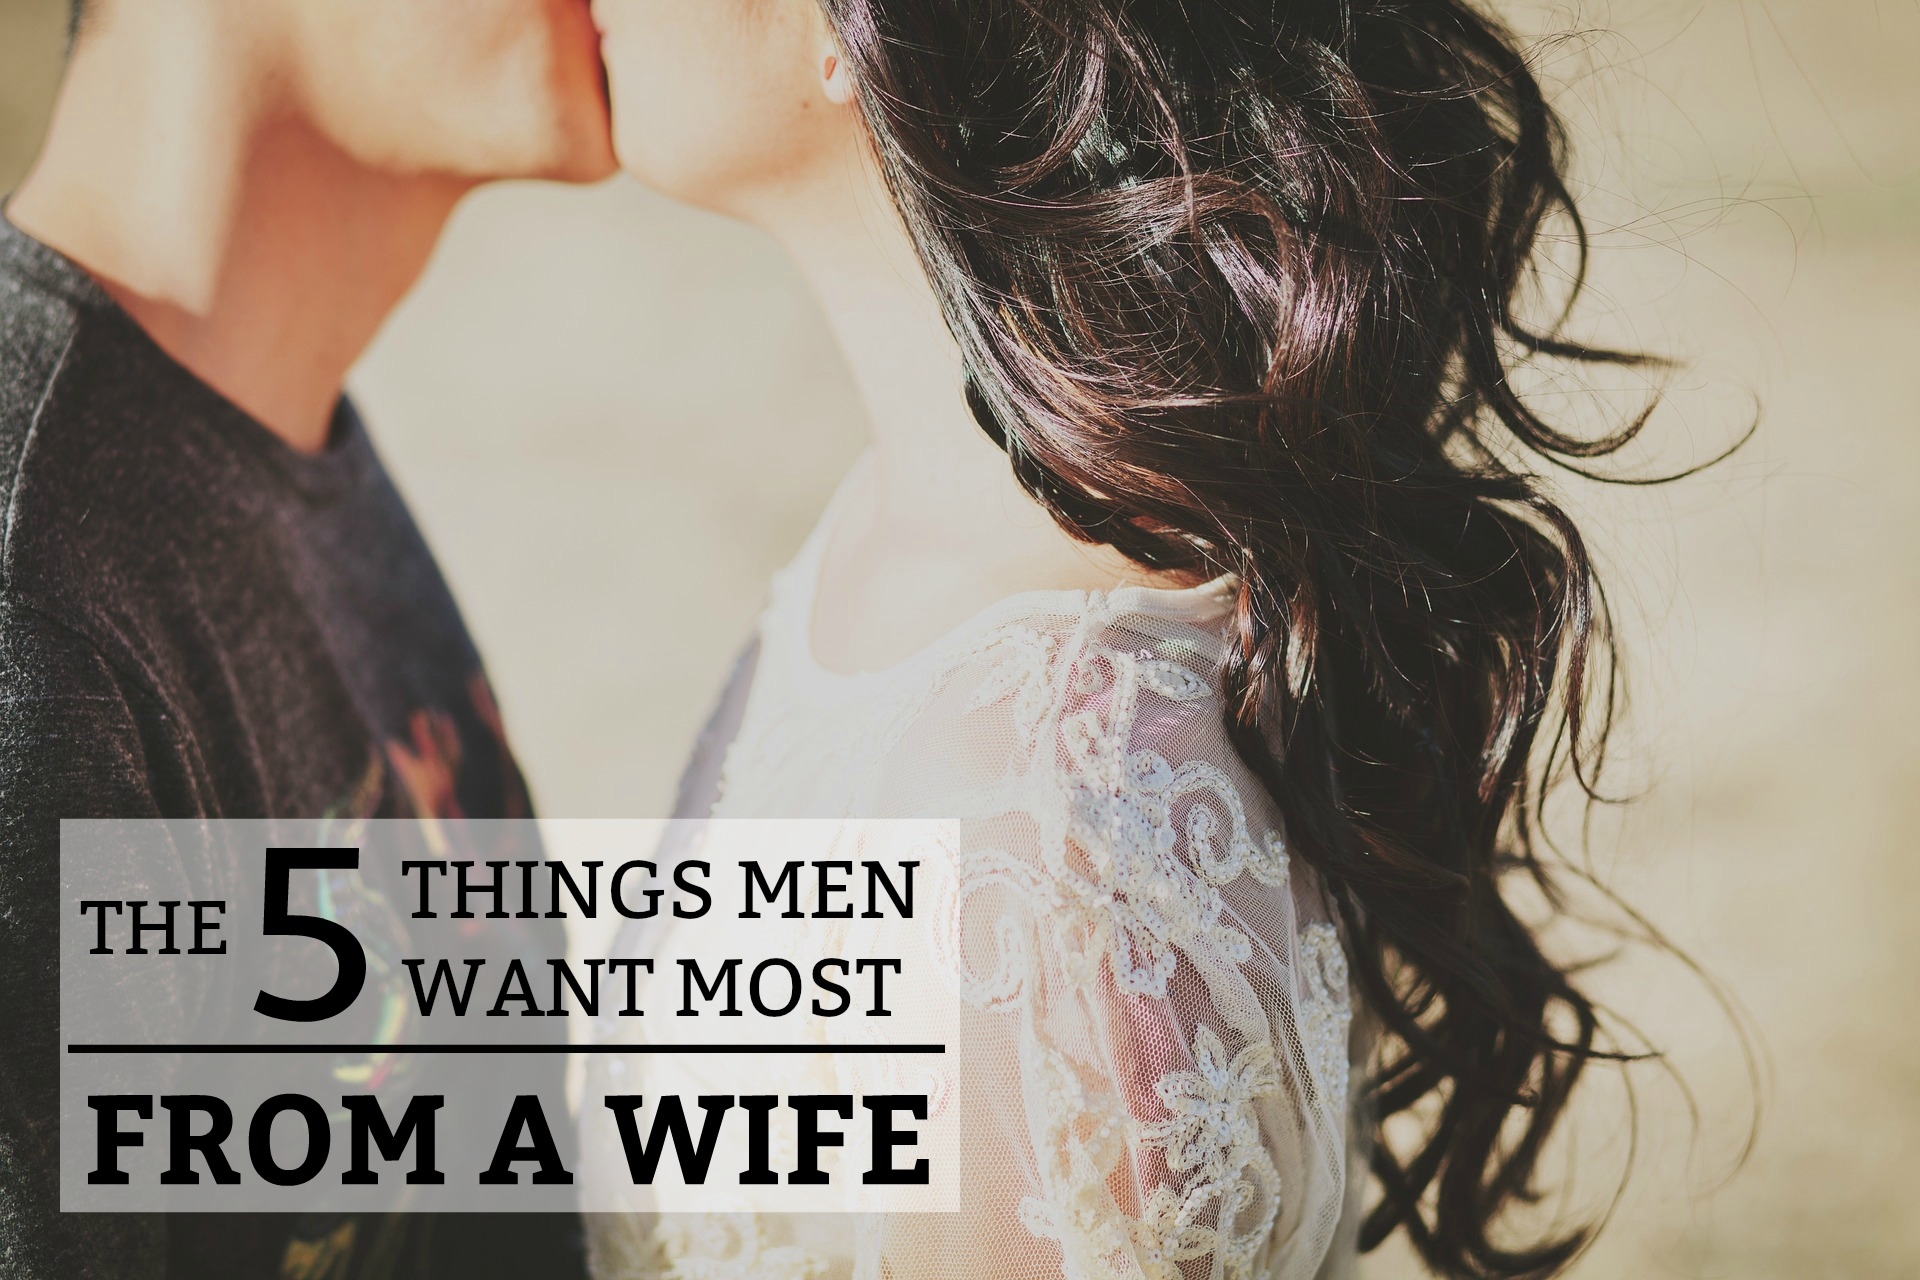 The 5 Things Men Want Most from a Wife The 5 Things Men Want Most from a Wife